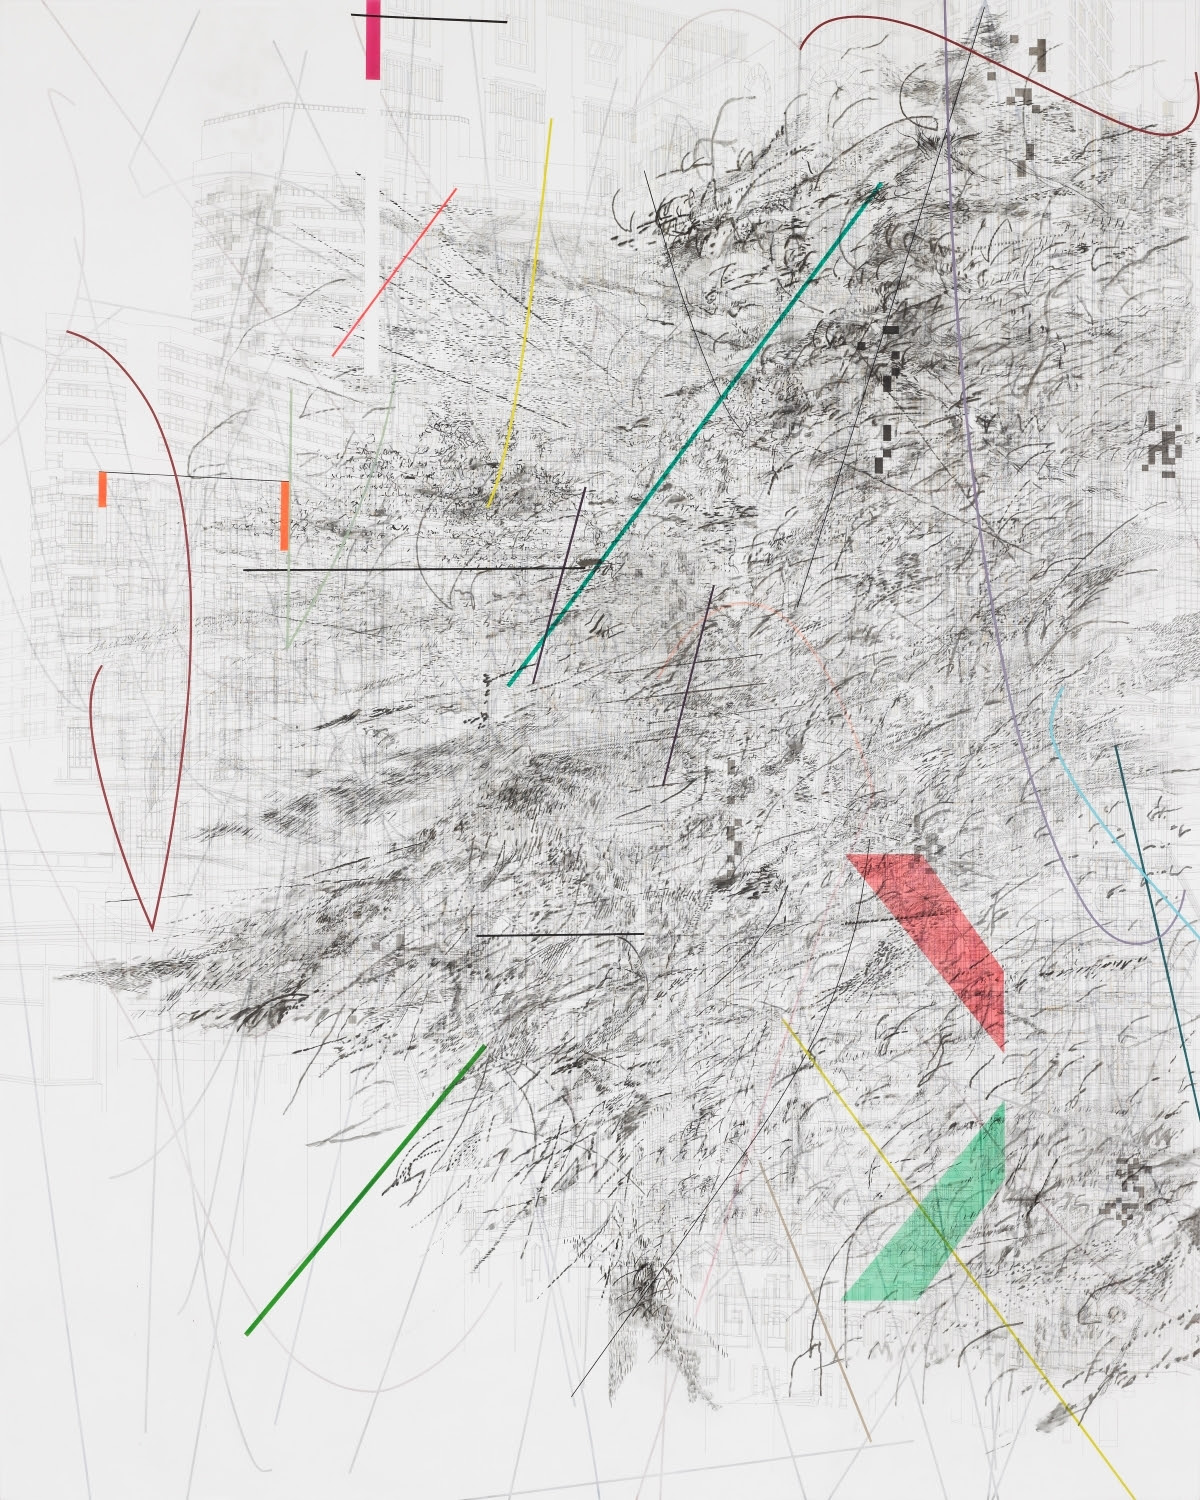 Julie Mehretu, Mogamma (A Painting in Four Parts) (1 of 4), 2012.